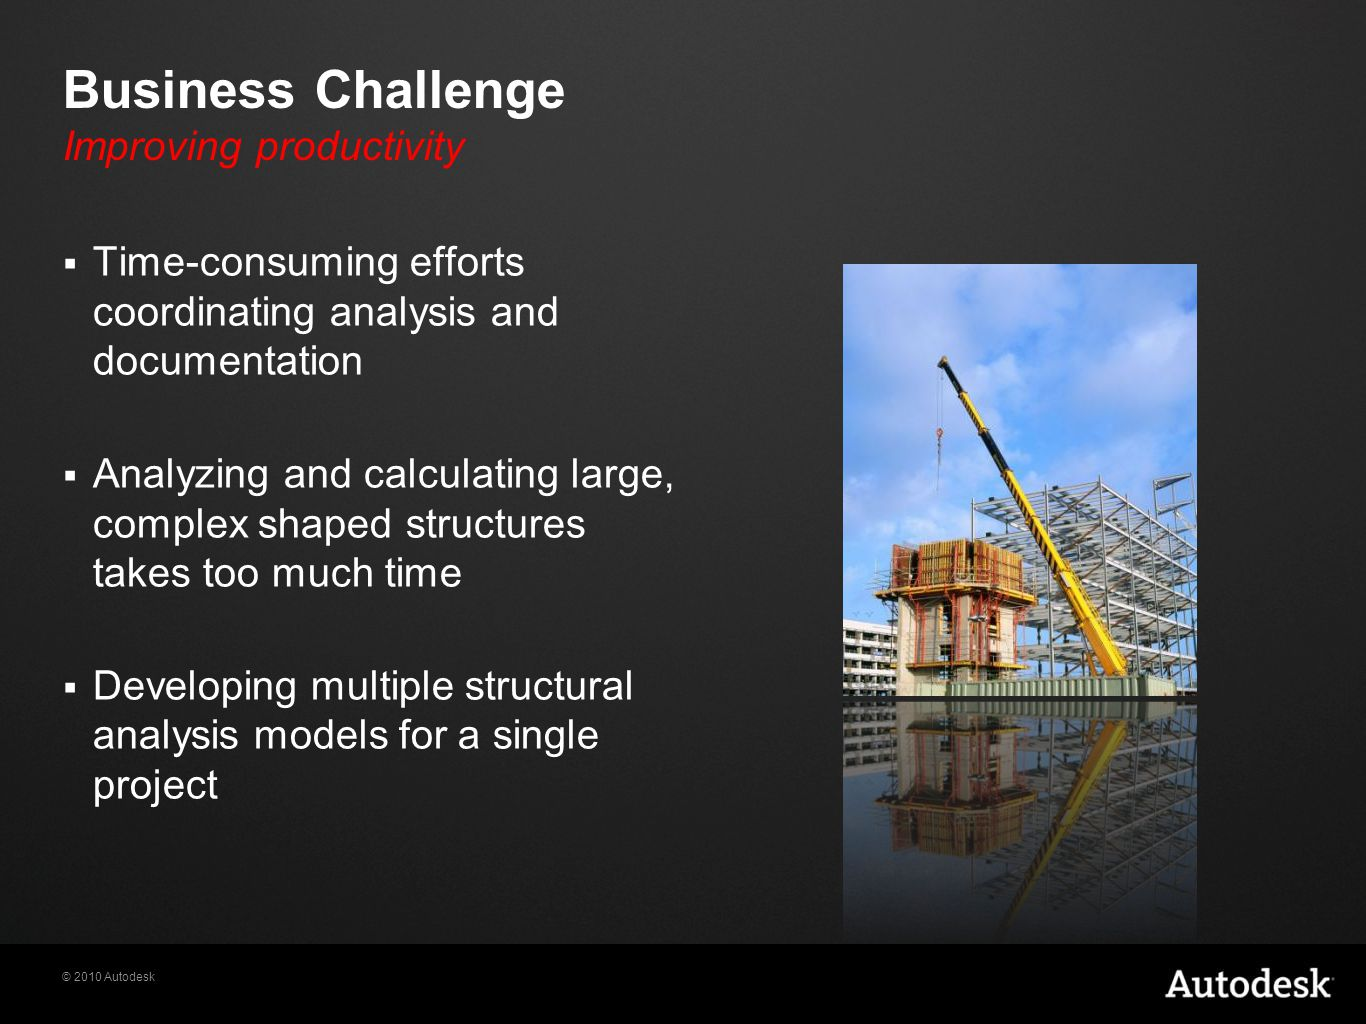 © 2010 Autodesk Business Challenge Improving productivity  Time-consuming efforts coordinating analysis and documentation  Analyzing and calculating large, complex shaped structures takes too much time  Developing multiple structural analysis models for a single project